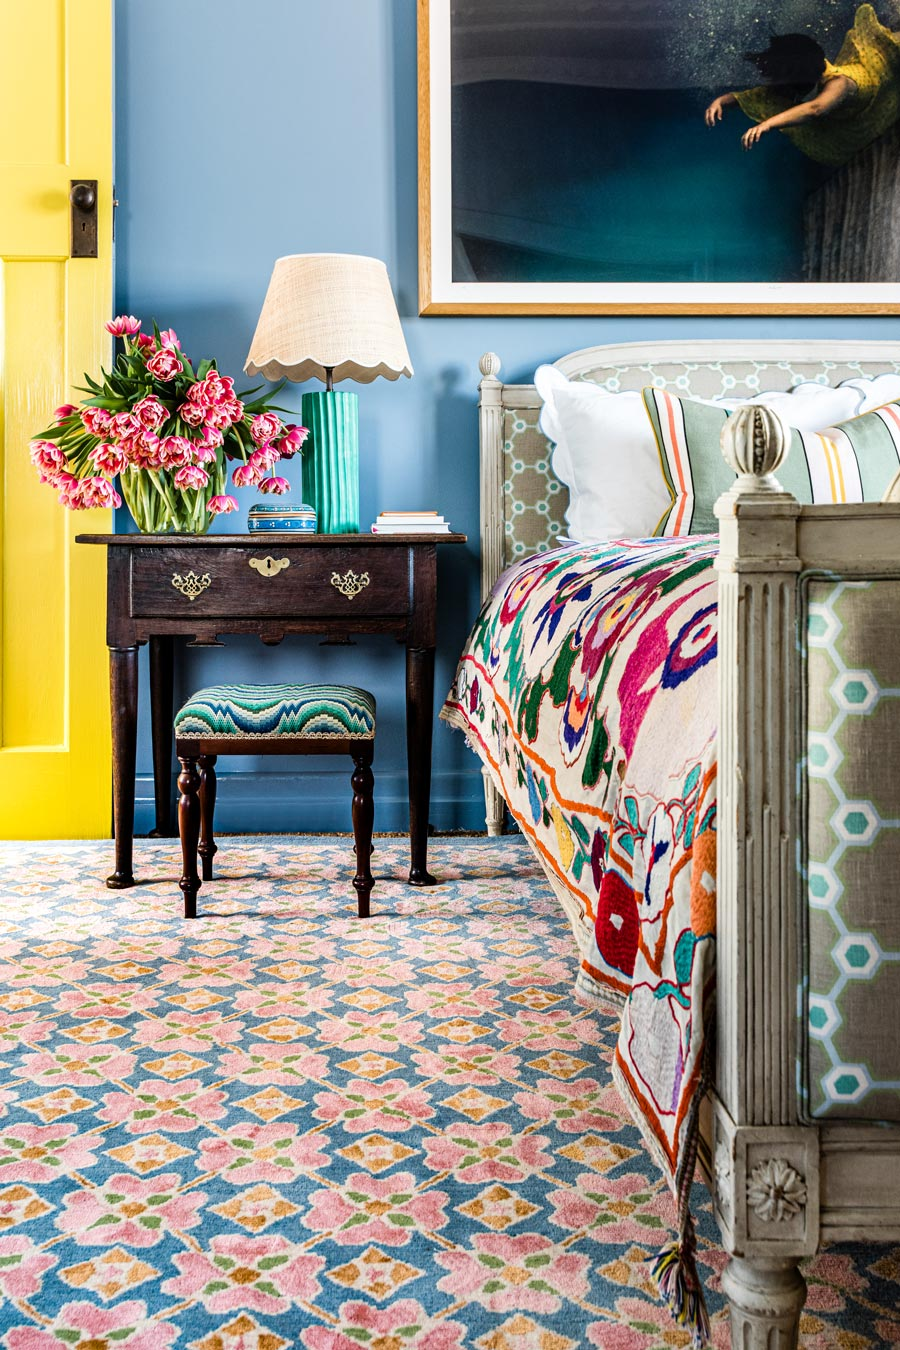 location bedroom shot of flora rug by anna spiro in floral repeat pattern with a blue border